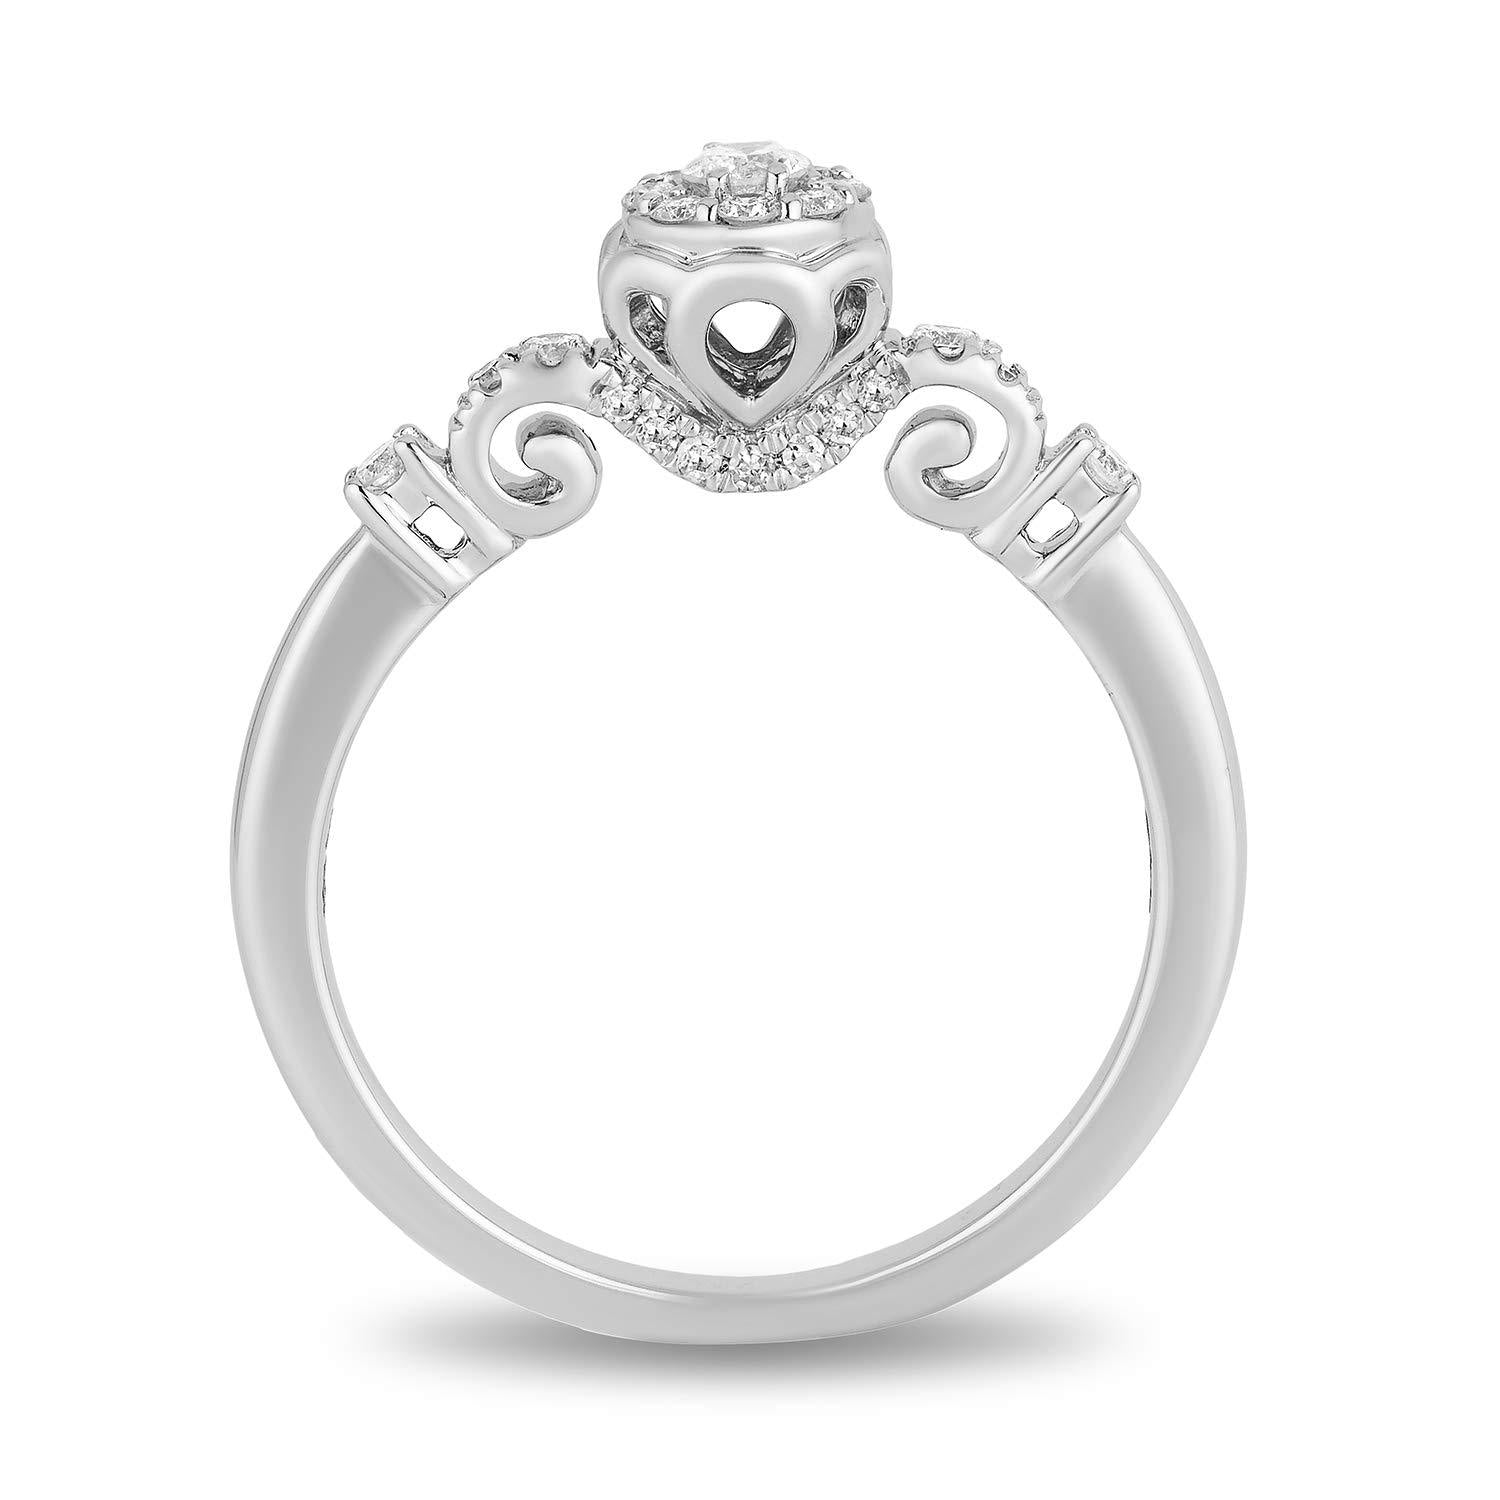 enchanted_disney-cinderella_ring-white_gold_1/4CTTW_3